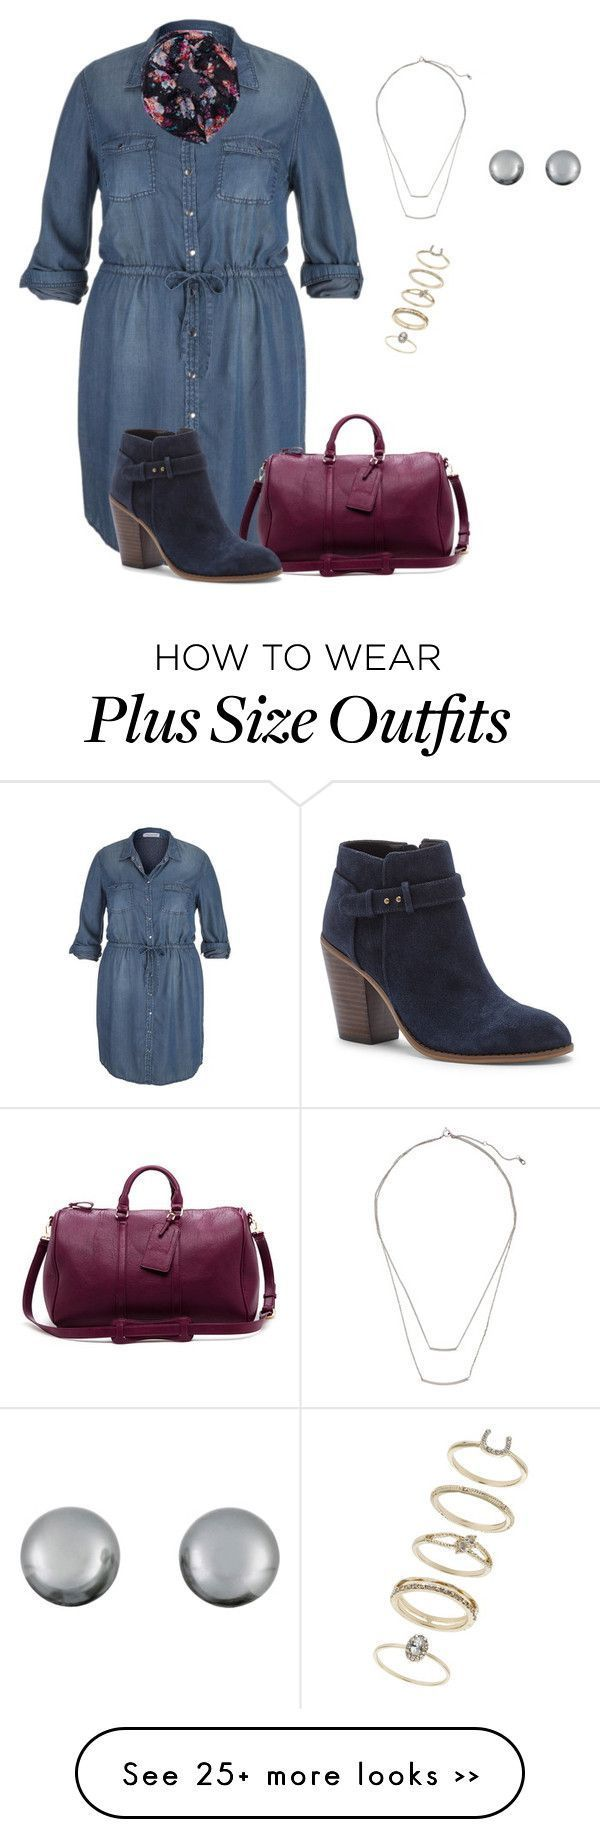 """""""plus size fall ready"""" by kristie-payne on Polyvore. For more inbetweenie and plus size inspiration go to www.dressingup.co.nz"""